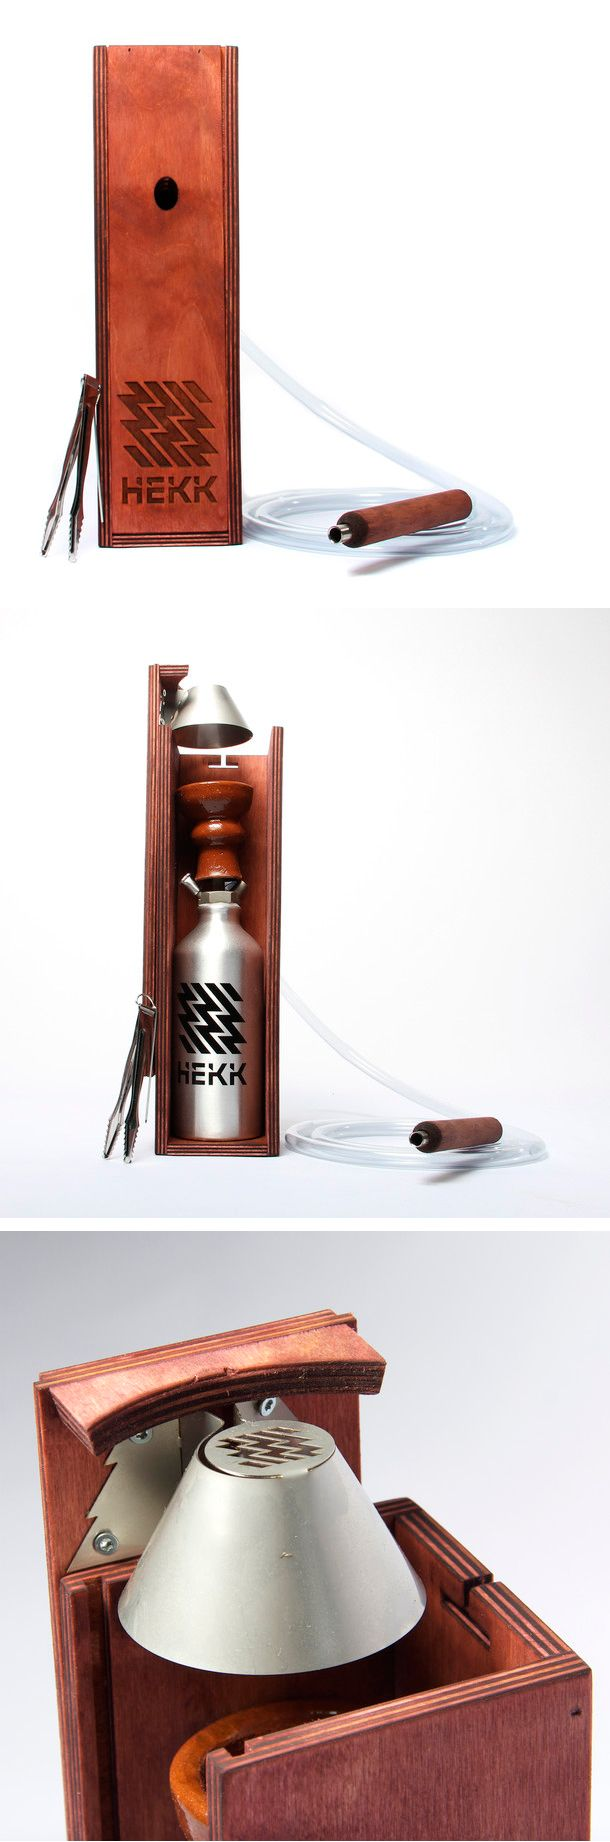 Hekk Modern Hookah Pipe   Designed To Stay Safe And Functional Even When  Knocked Around.